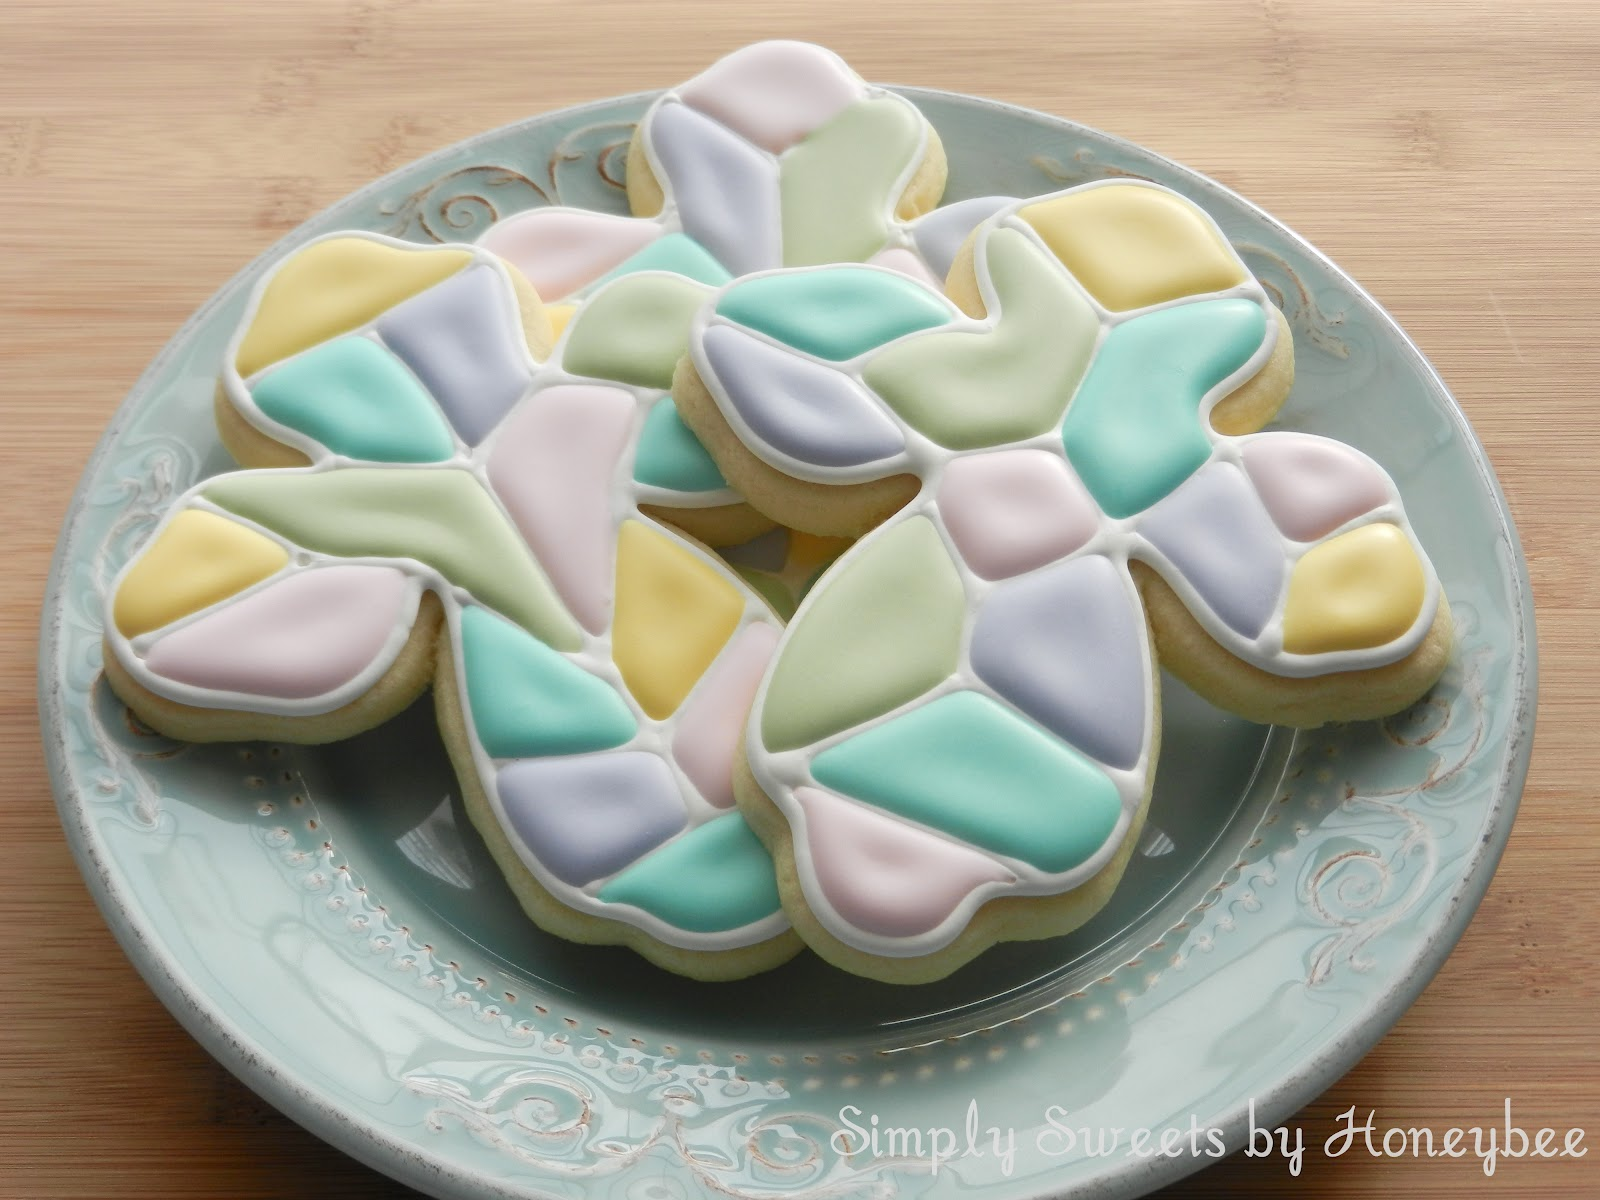 Mosaic Cross Cookies